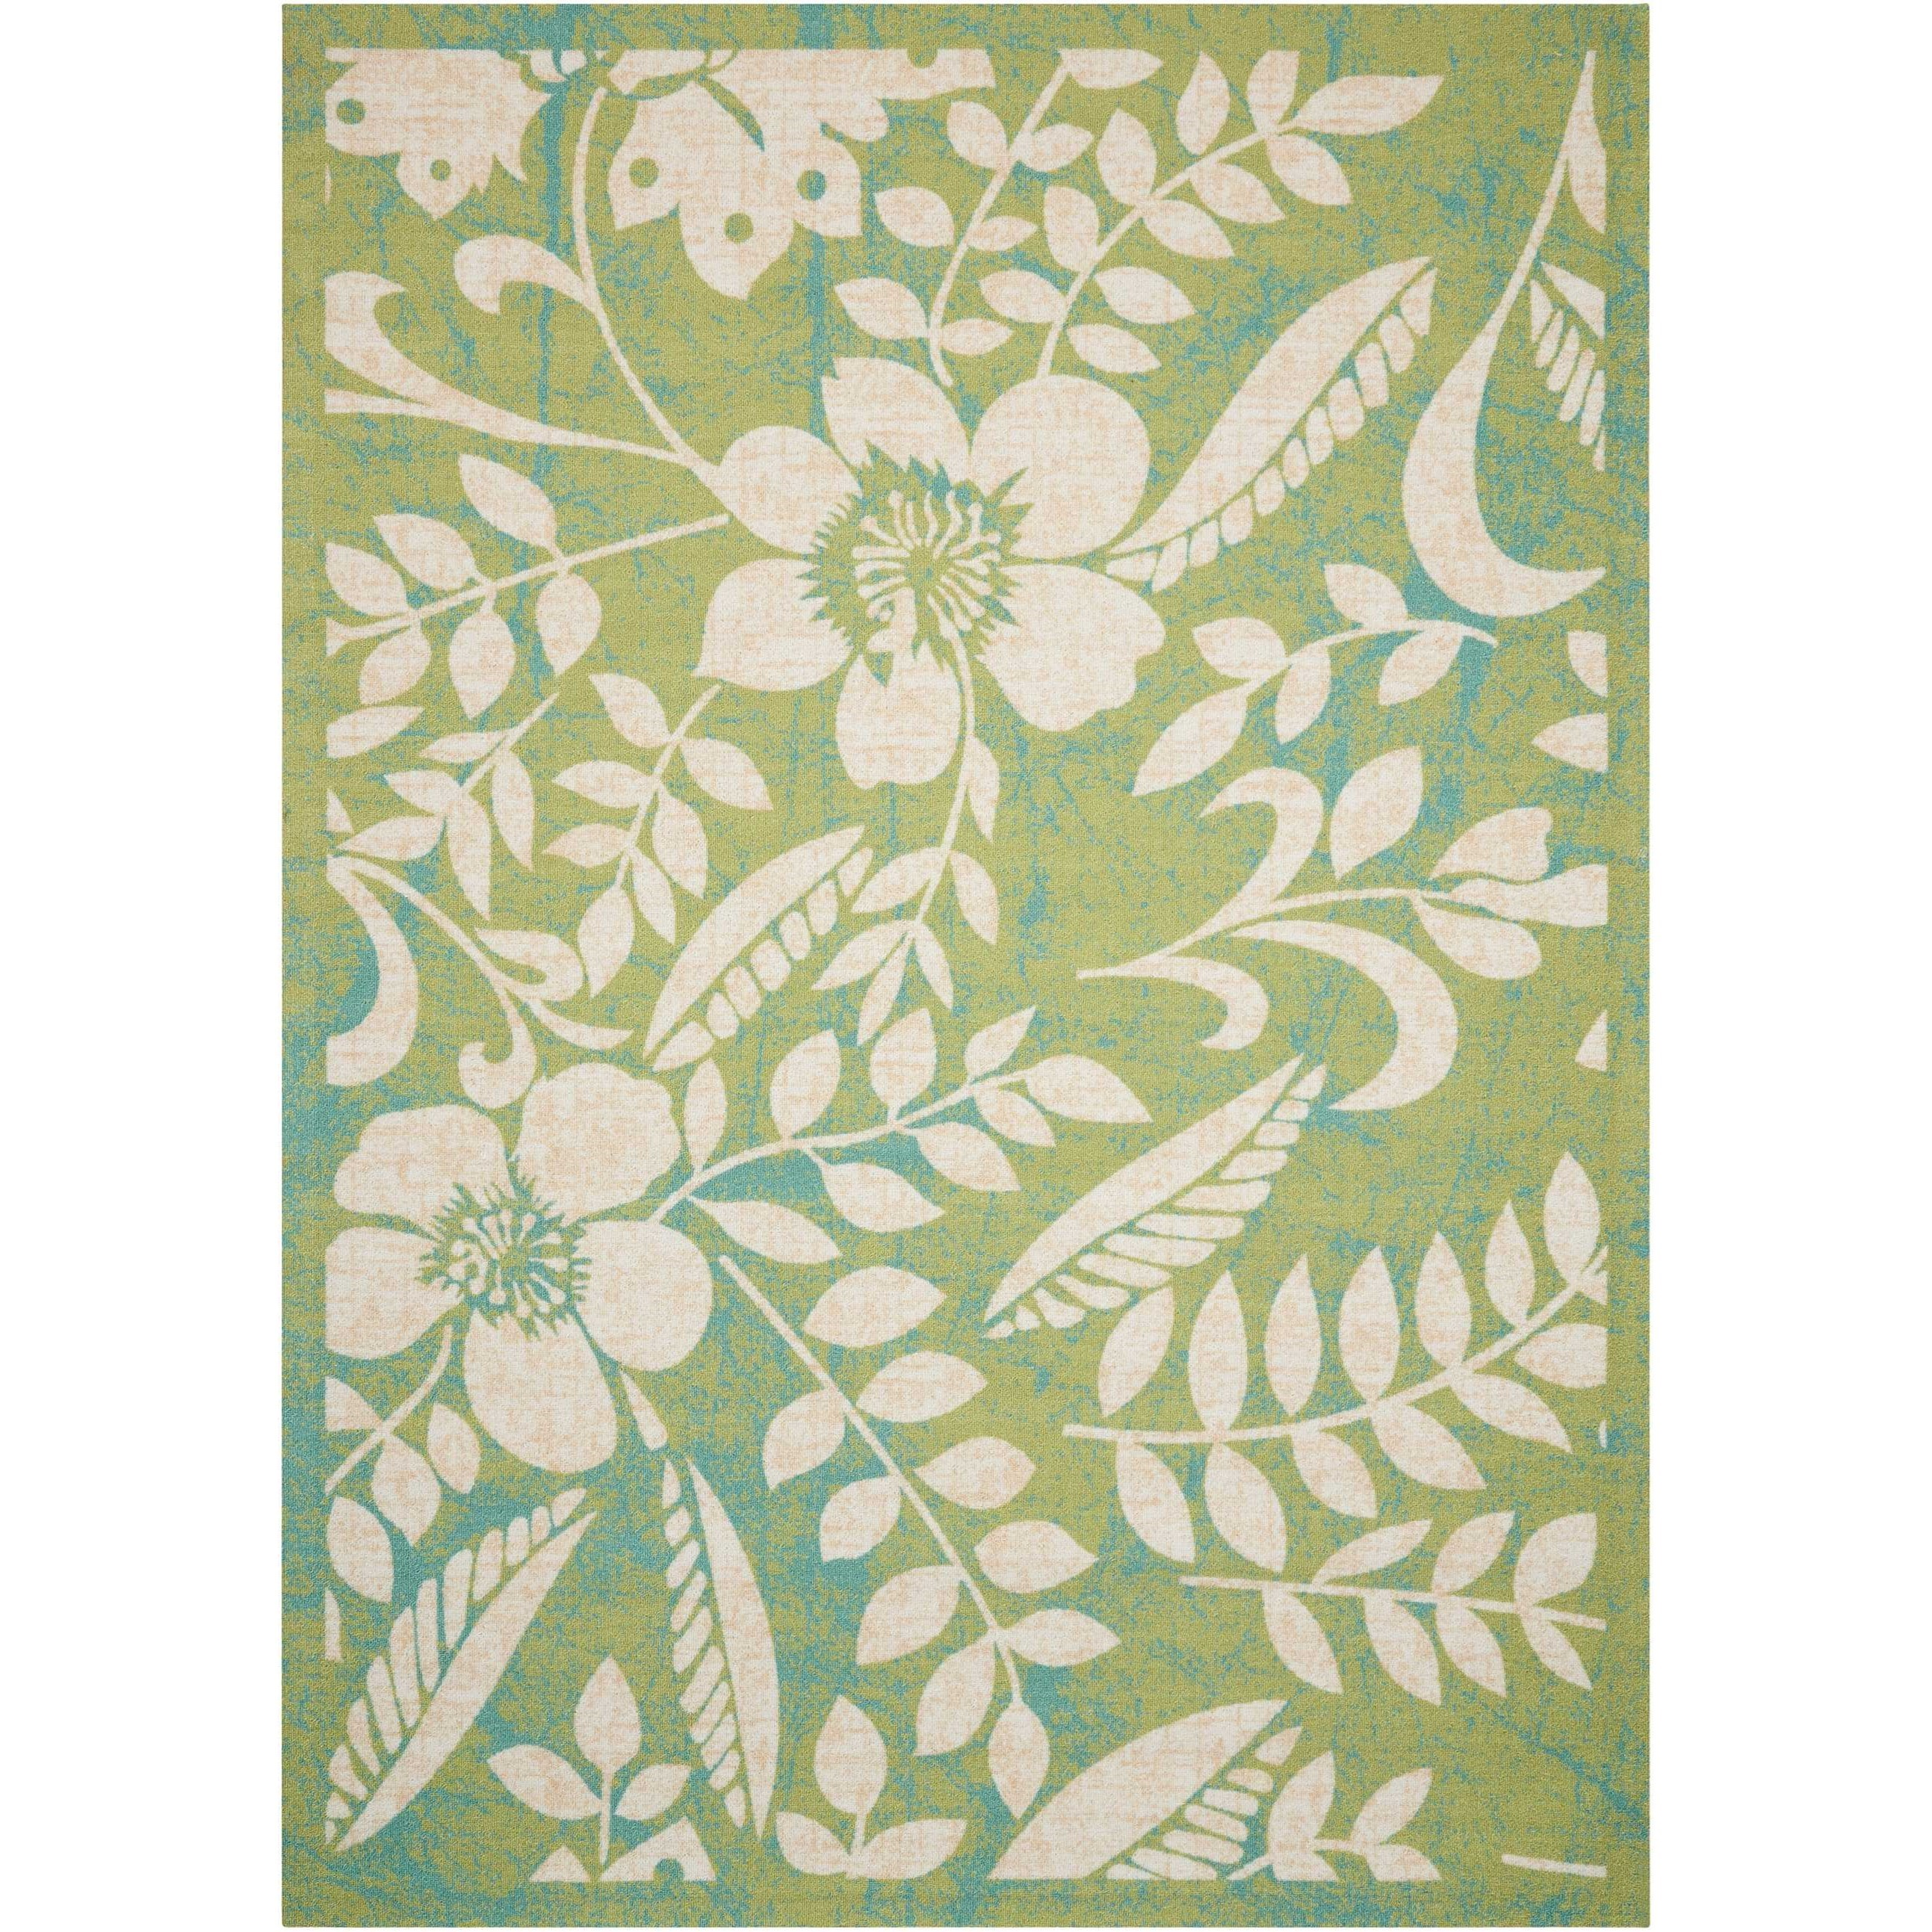 Coastal 10' X 13' Green Rug by Nourison at Sprintz Furniture